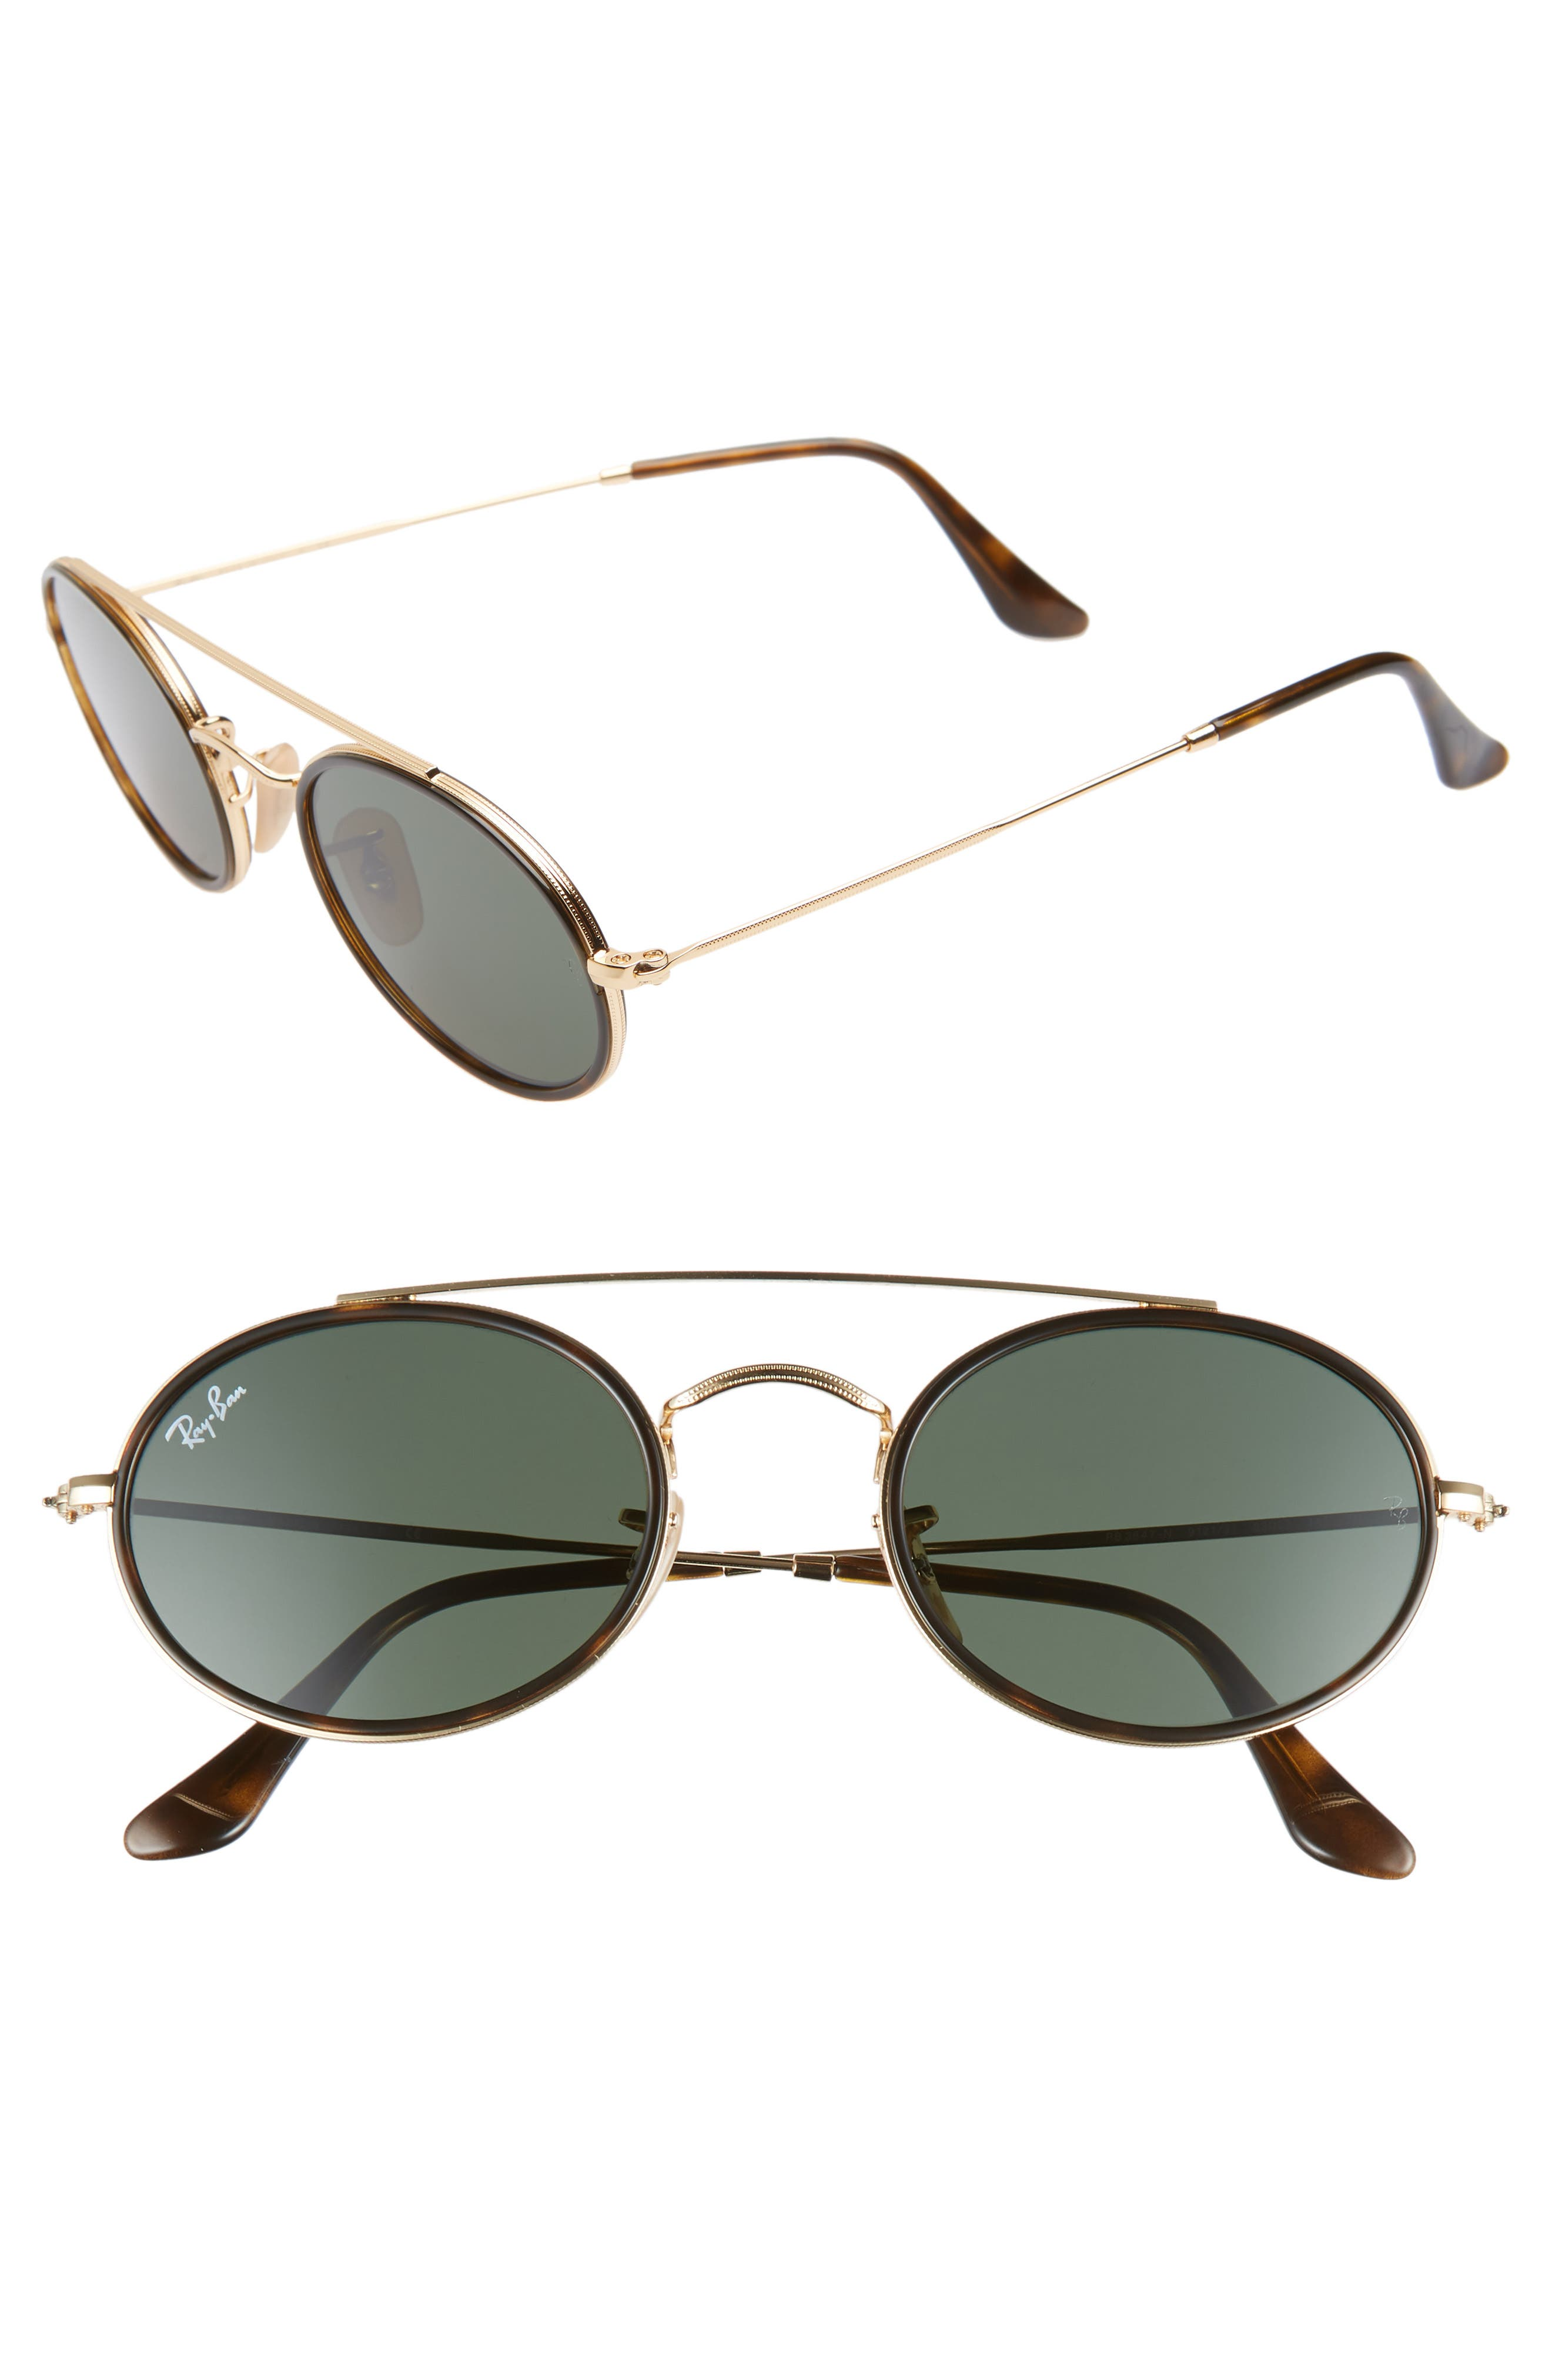 Ray-Ban Elite 52Mm Oval Sunglasses - Gold/ Dark Green Solid